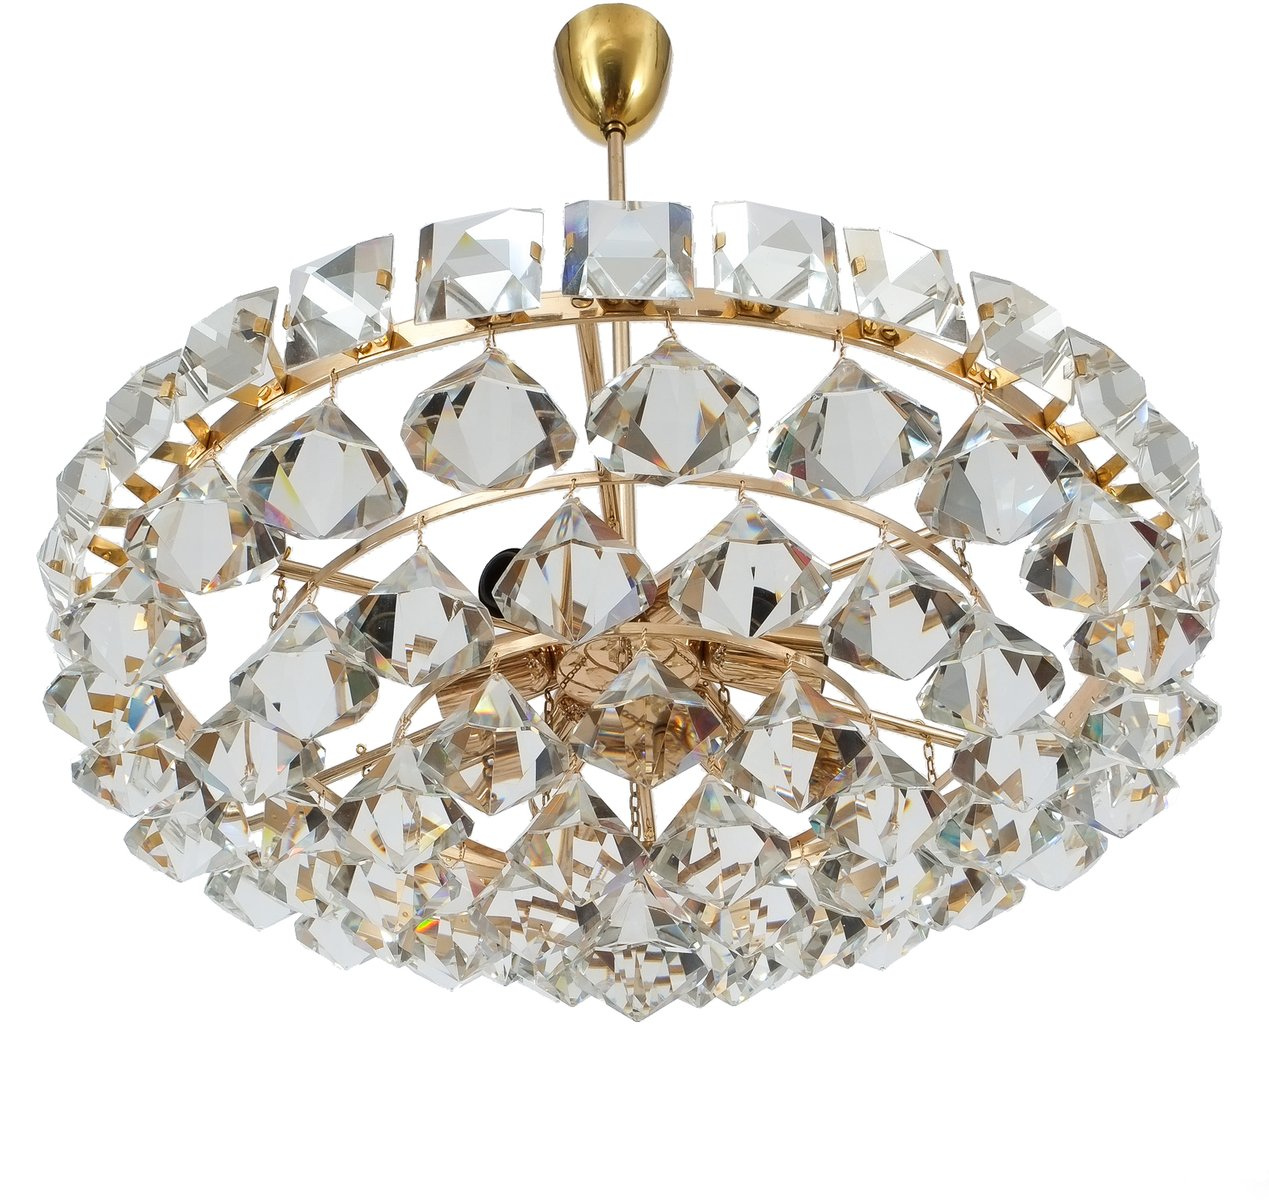 Vintage chandelier with pear shaped crystals from bakalowits vintage chandelier with pear shaped crystals from bakalowits sohne aloadofball Choice Image